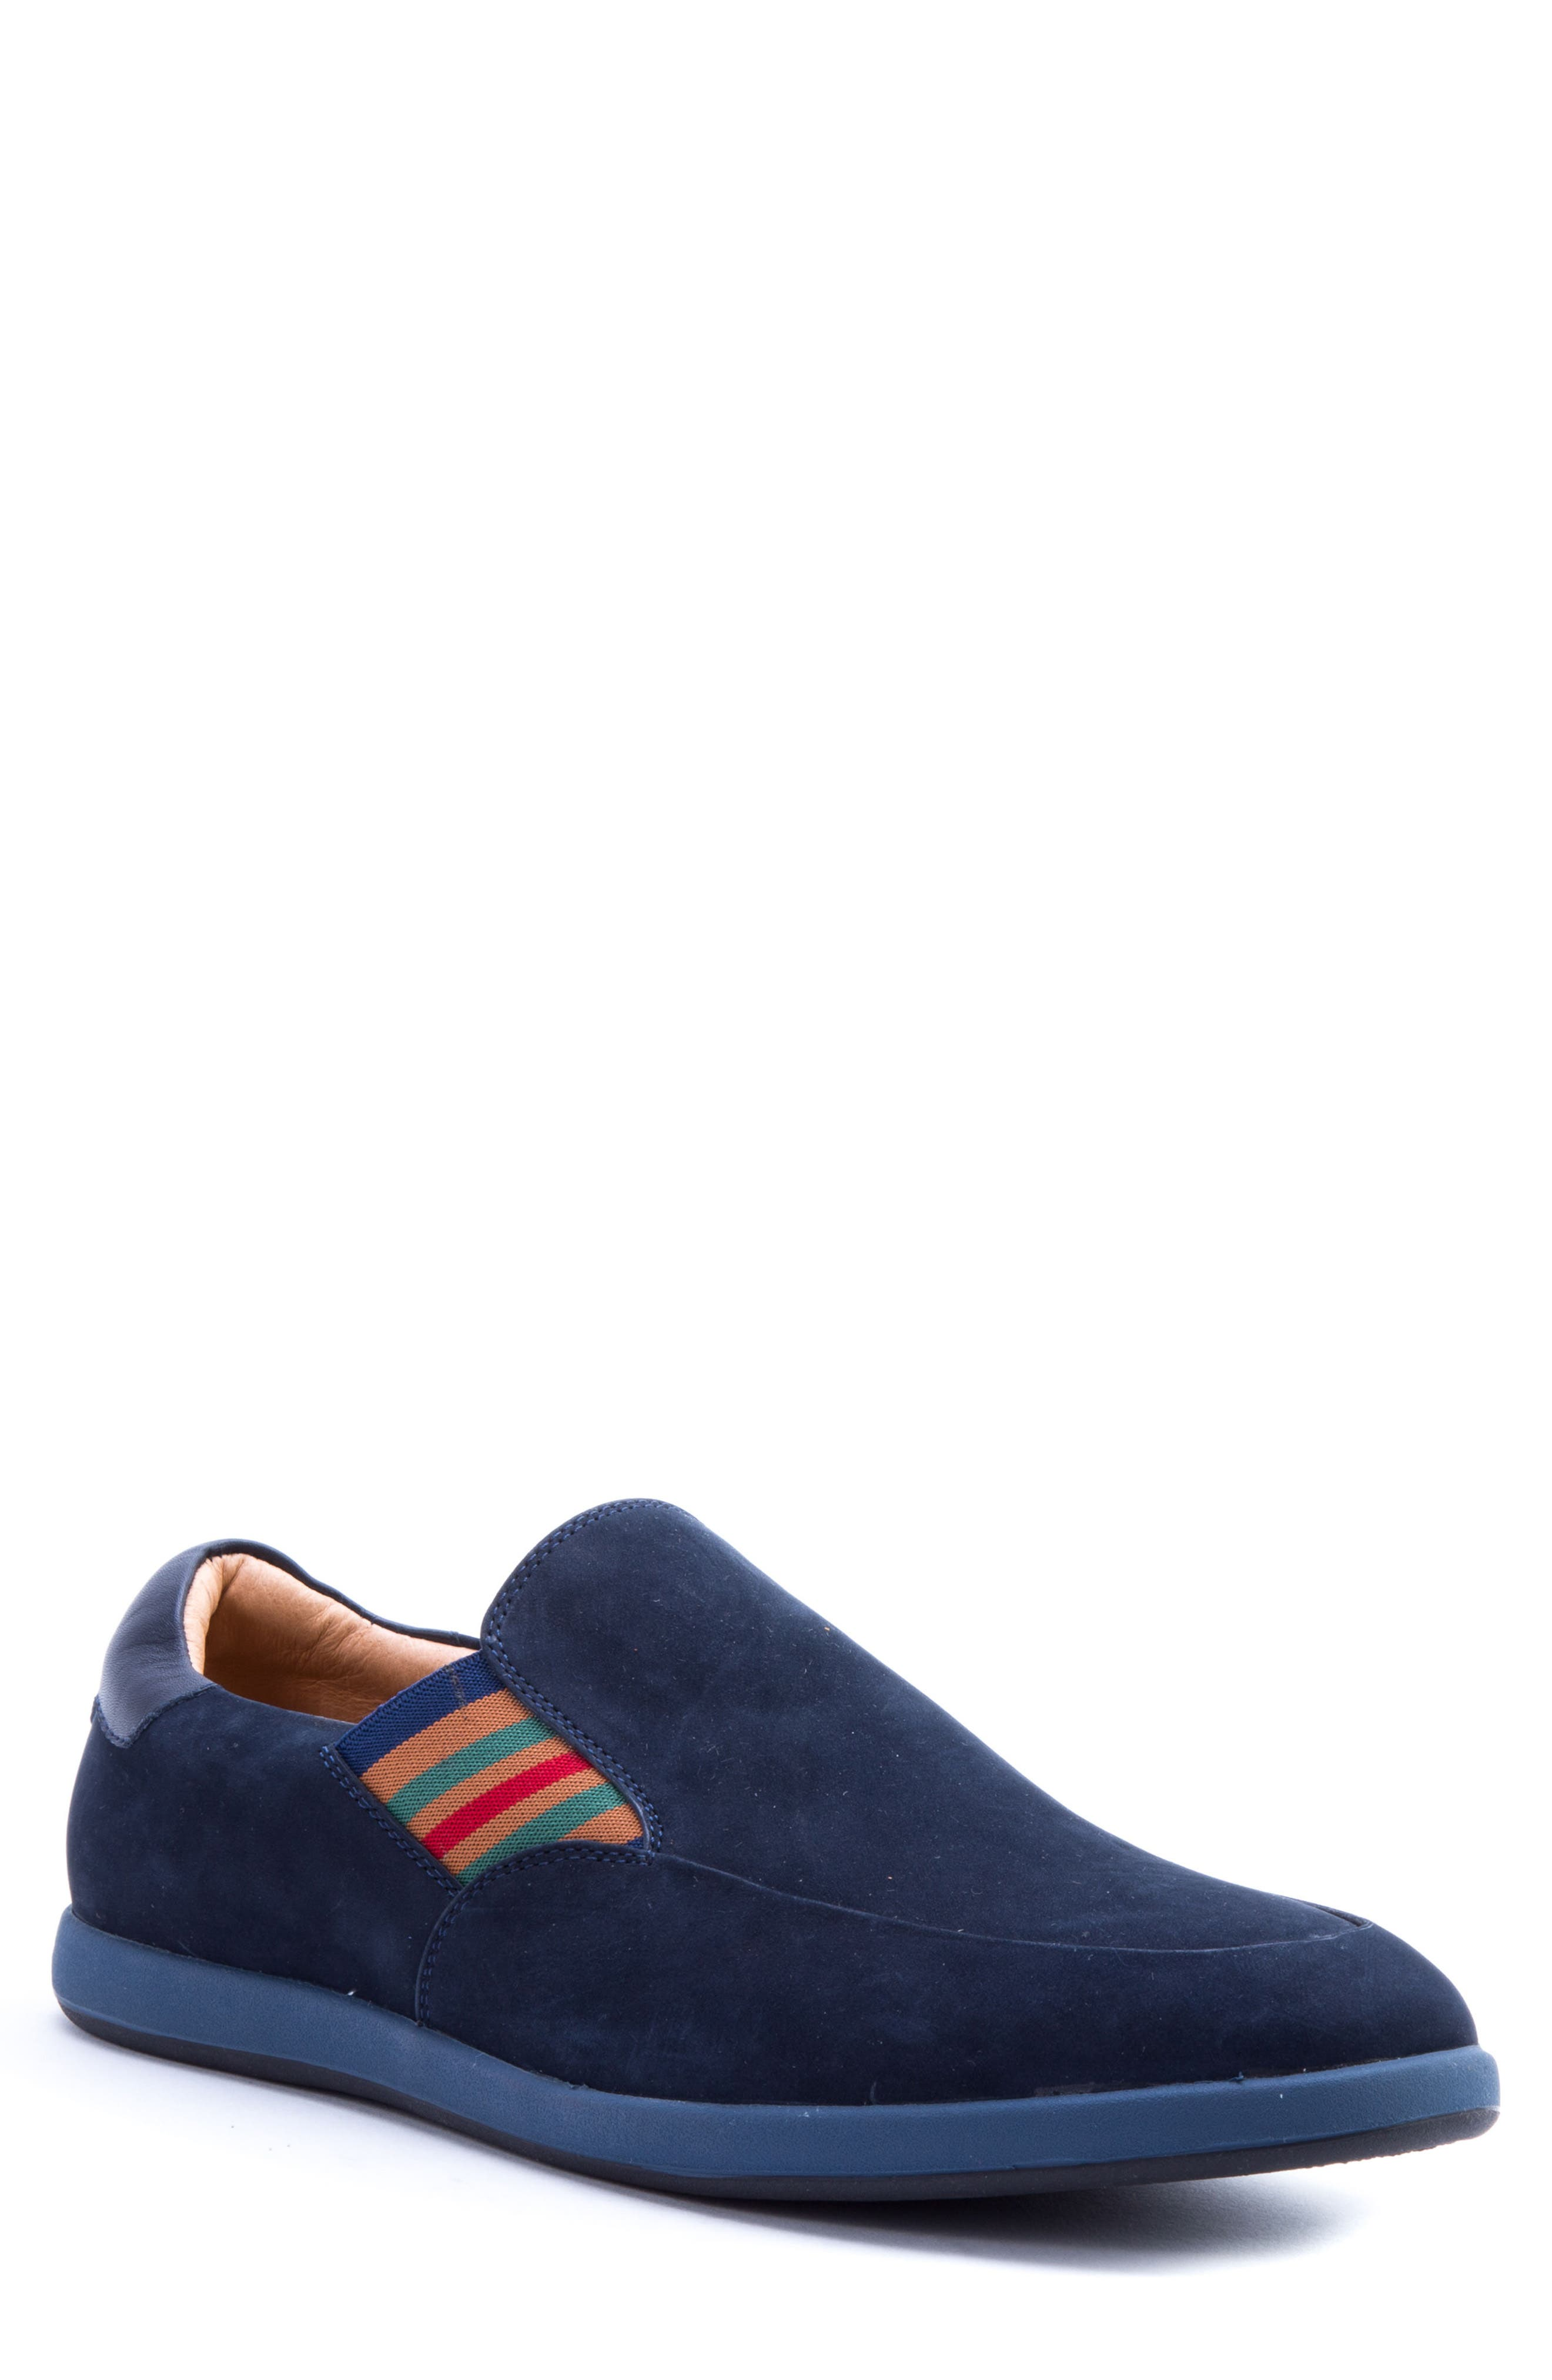 Avenida Striped Slip-On,                             Main thumbnail 1, color,                             Navy Suede